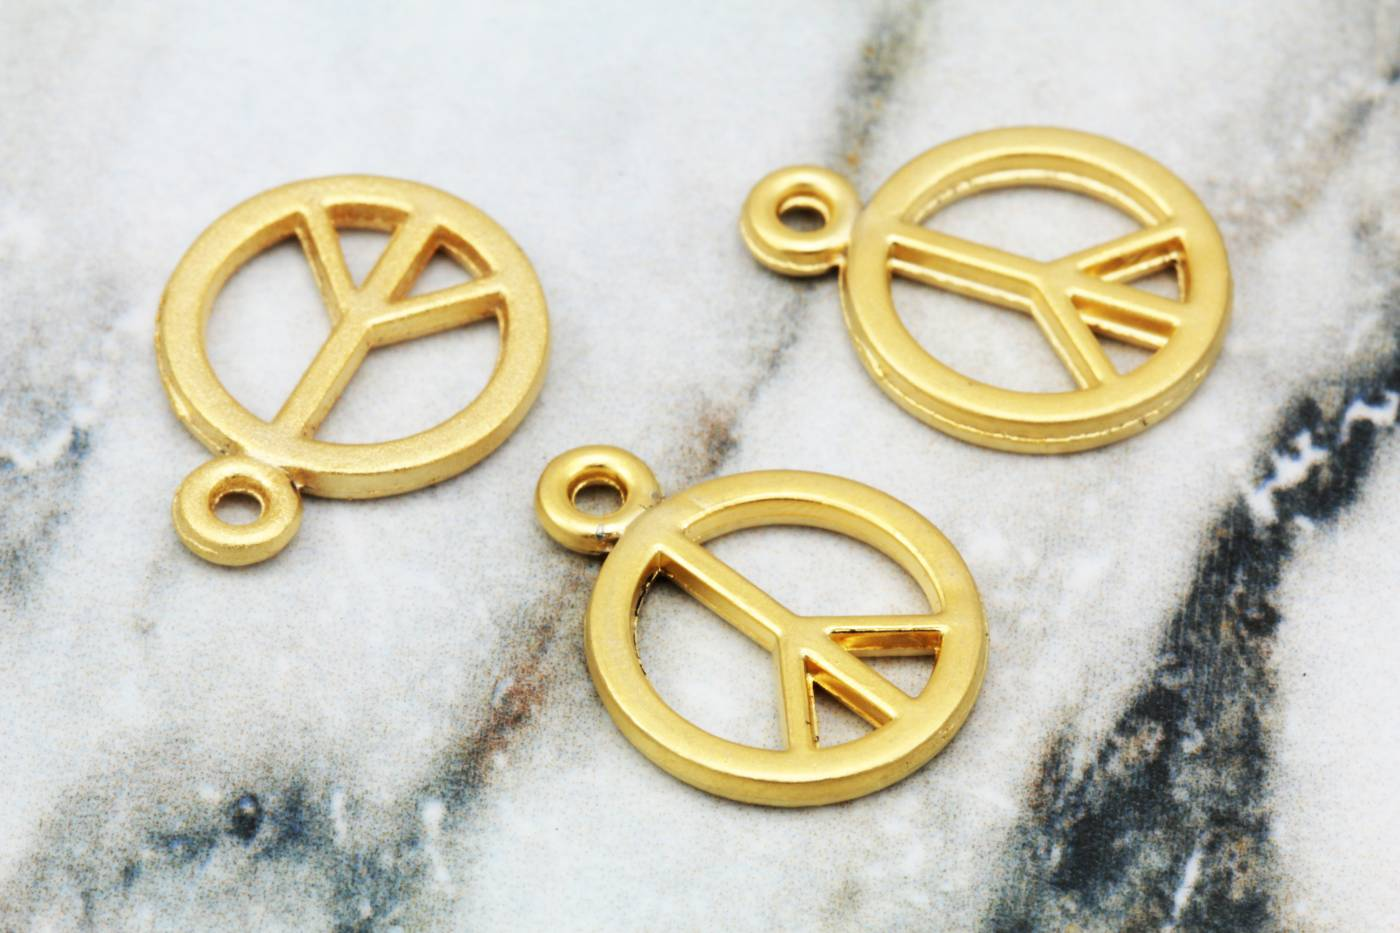 gold-plated-peace-sign-metal-pendants.jpg